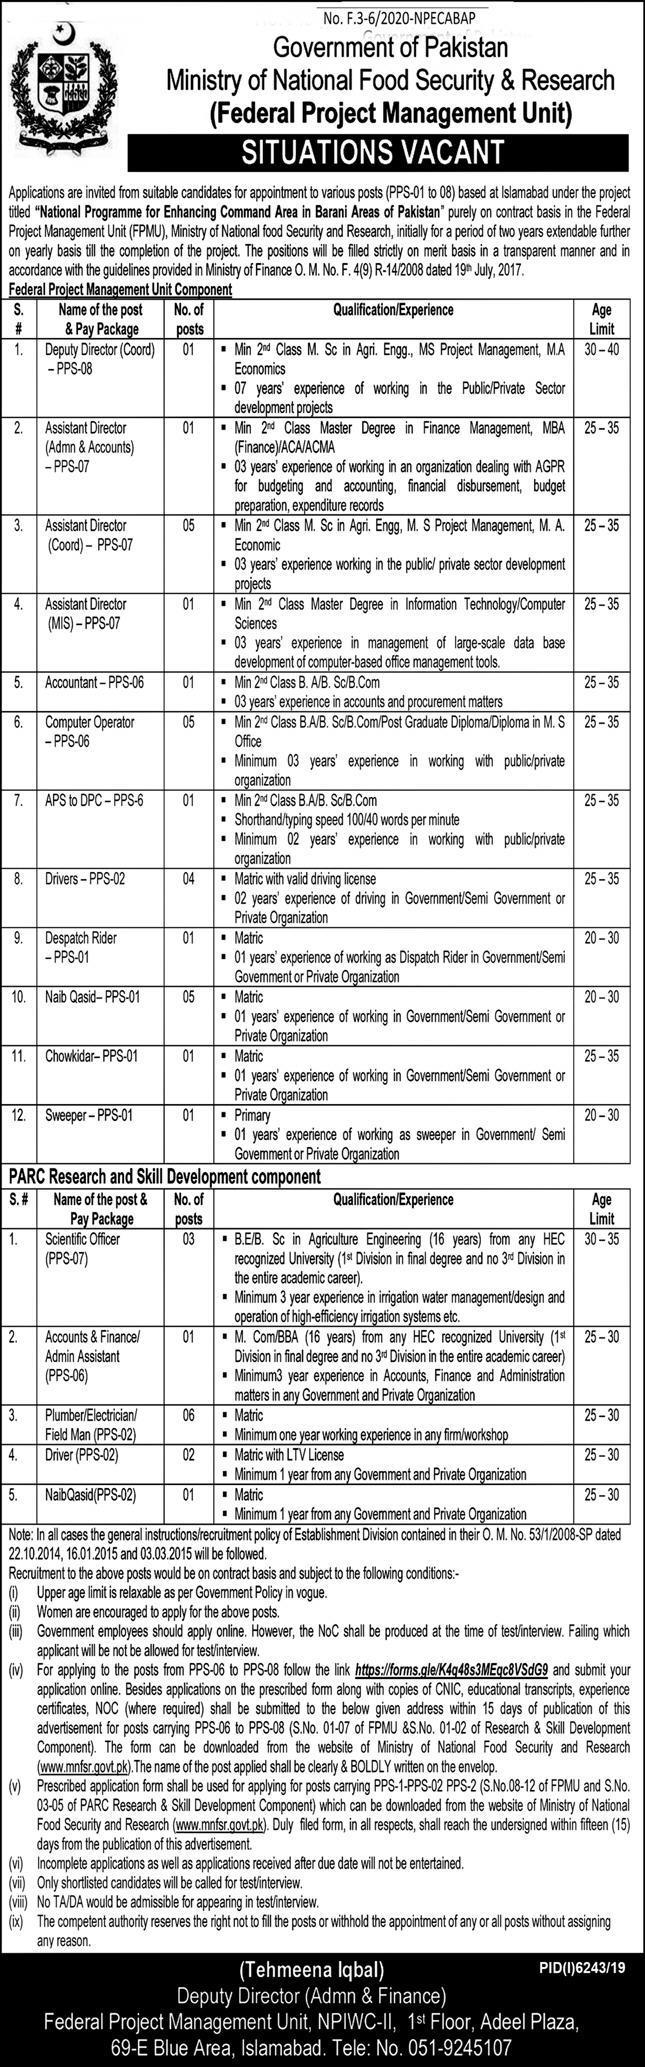 Ministry of National Food Security & Research jobs newspaper ad for Deputy Director in Islamabad